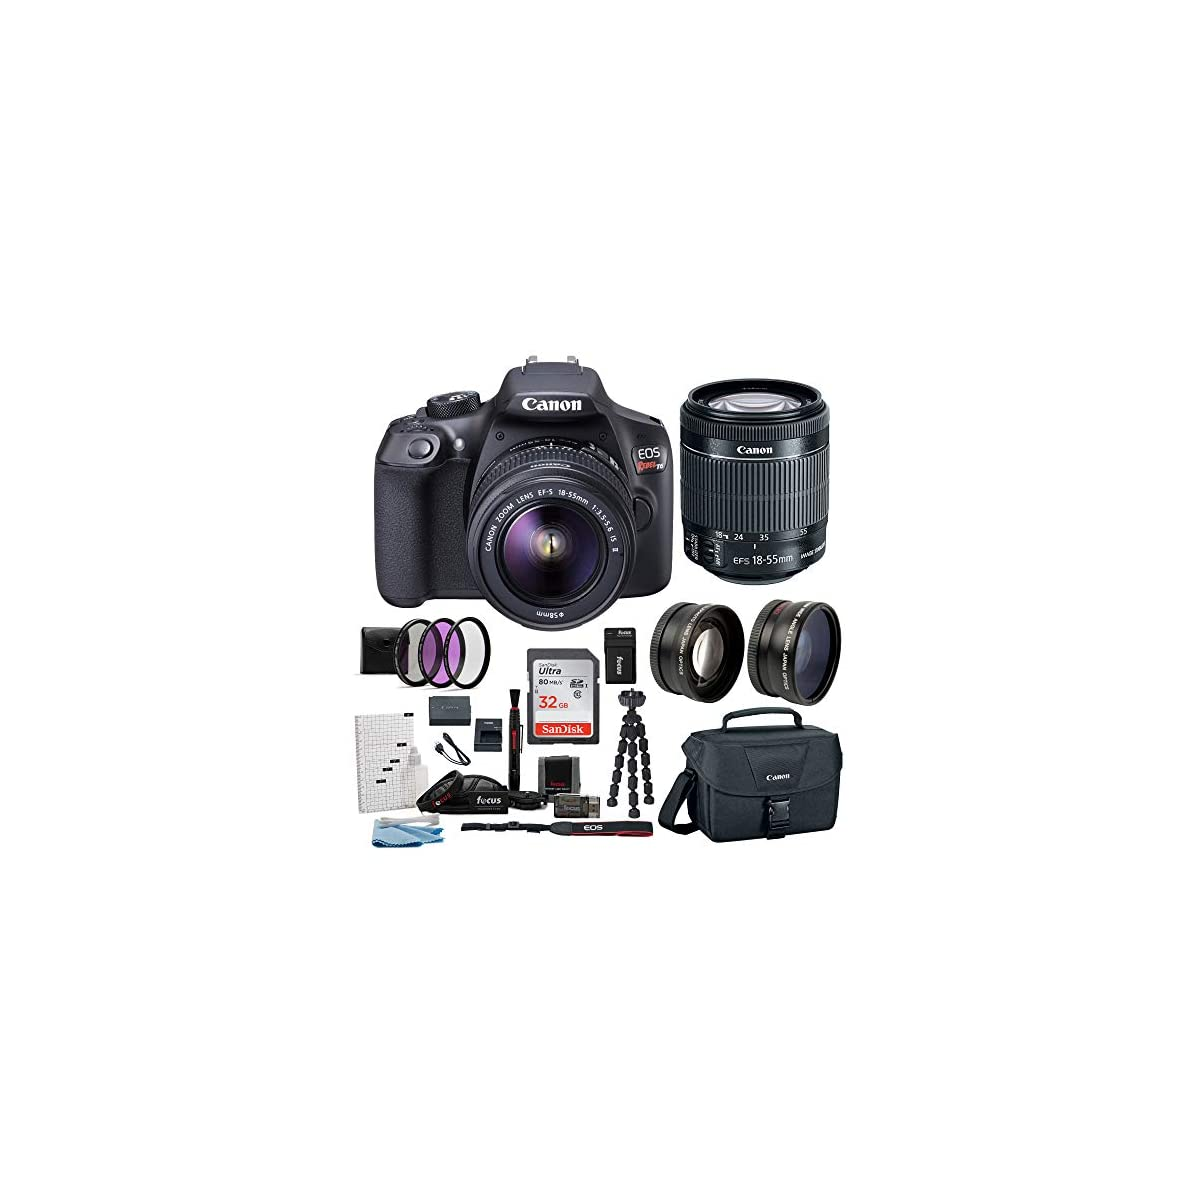 SaleProductsOffer - No.1 Best Online Store 518HoNU-pdL Canon EOS Rebel T6 Digital Camera: 18 Megapixel 1080p HD Video DSLR Bundle With Wide Angle 18-55 MM Lens 32GB SD Card Mini Tripod Filter Kit & Charger - Professional Vlogging Sports and Action Cameras